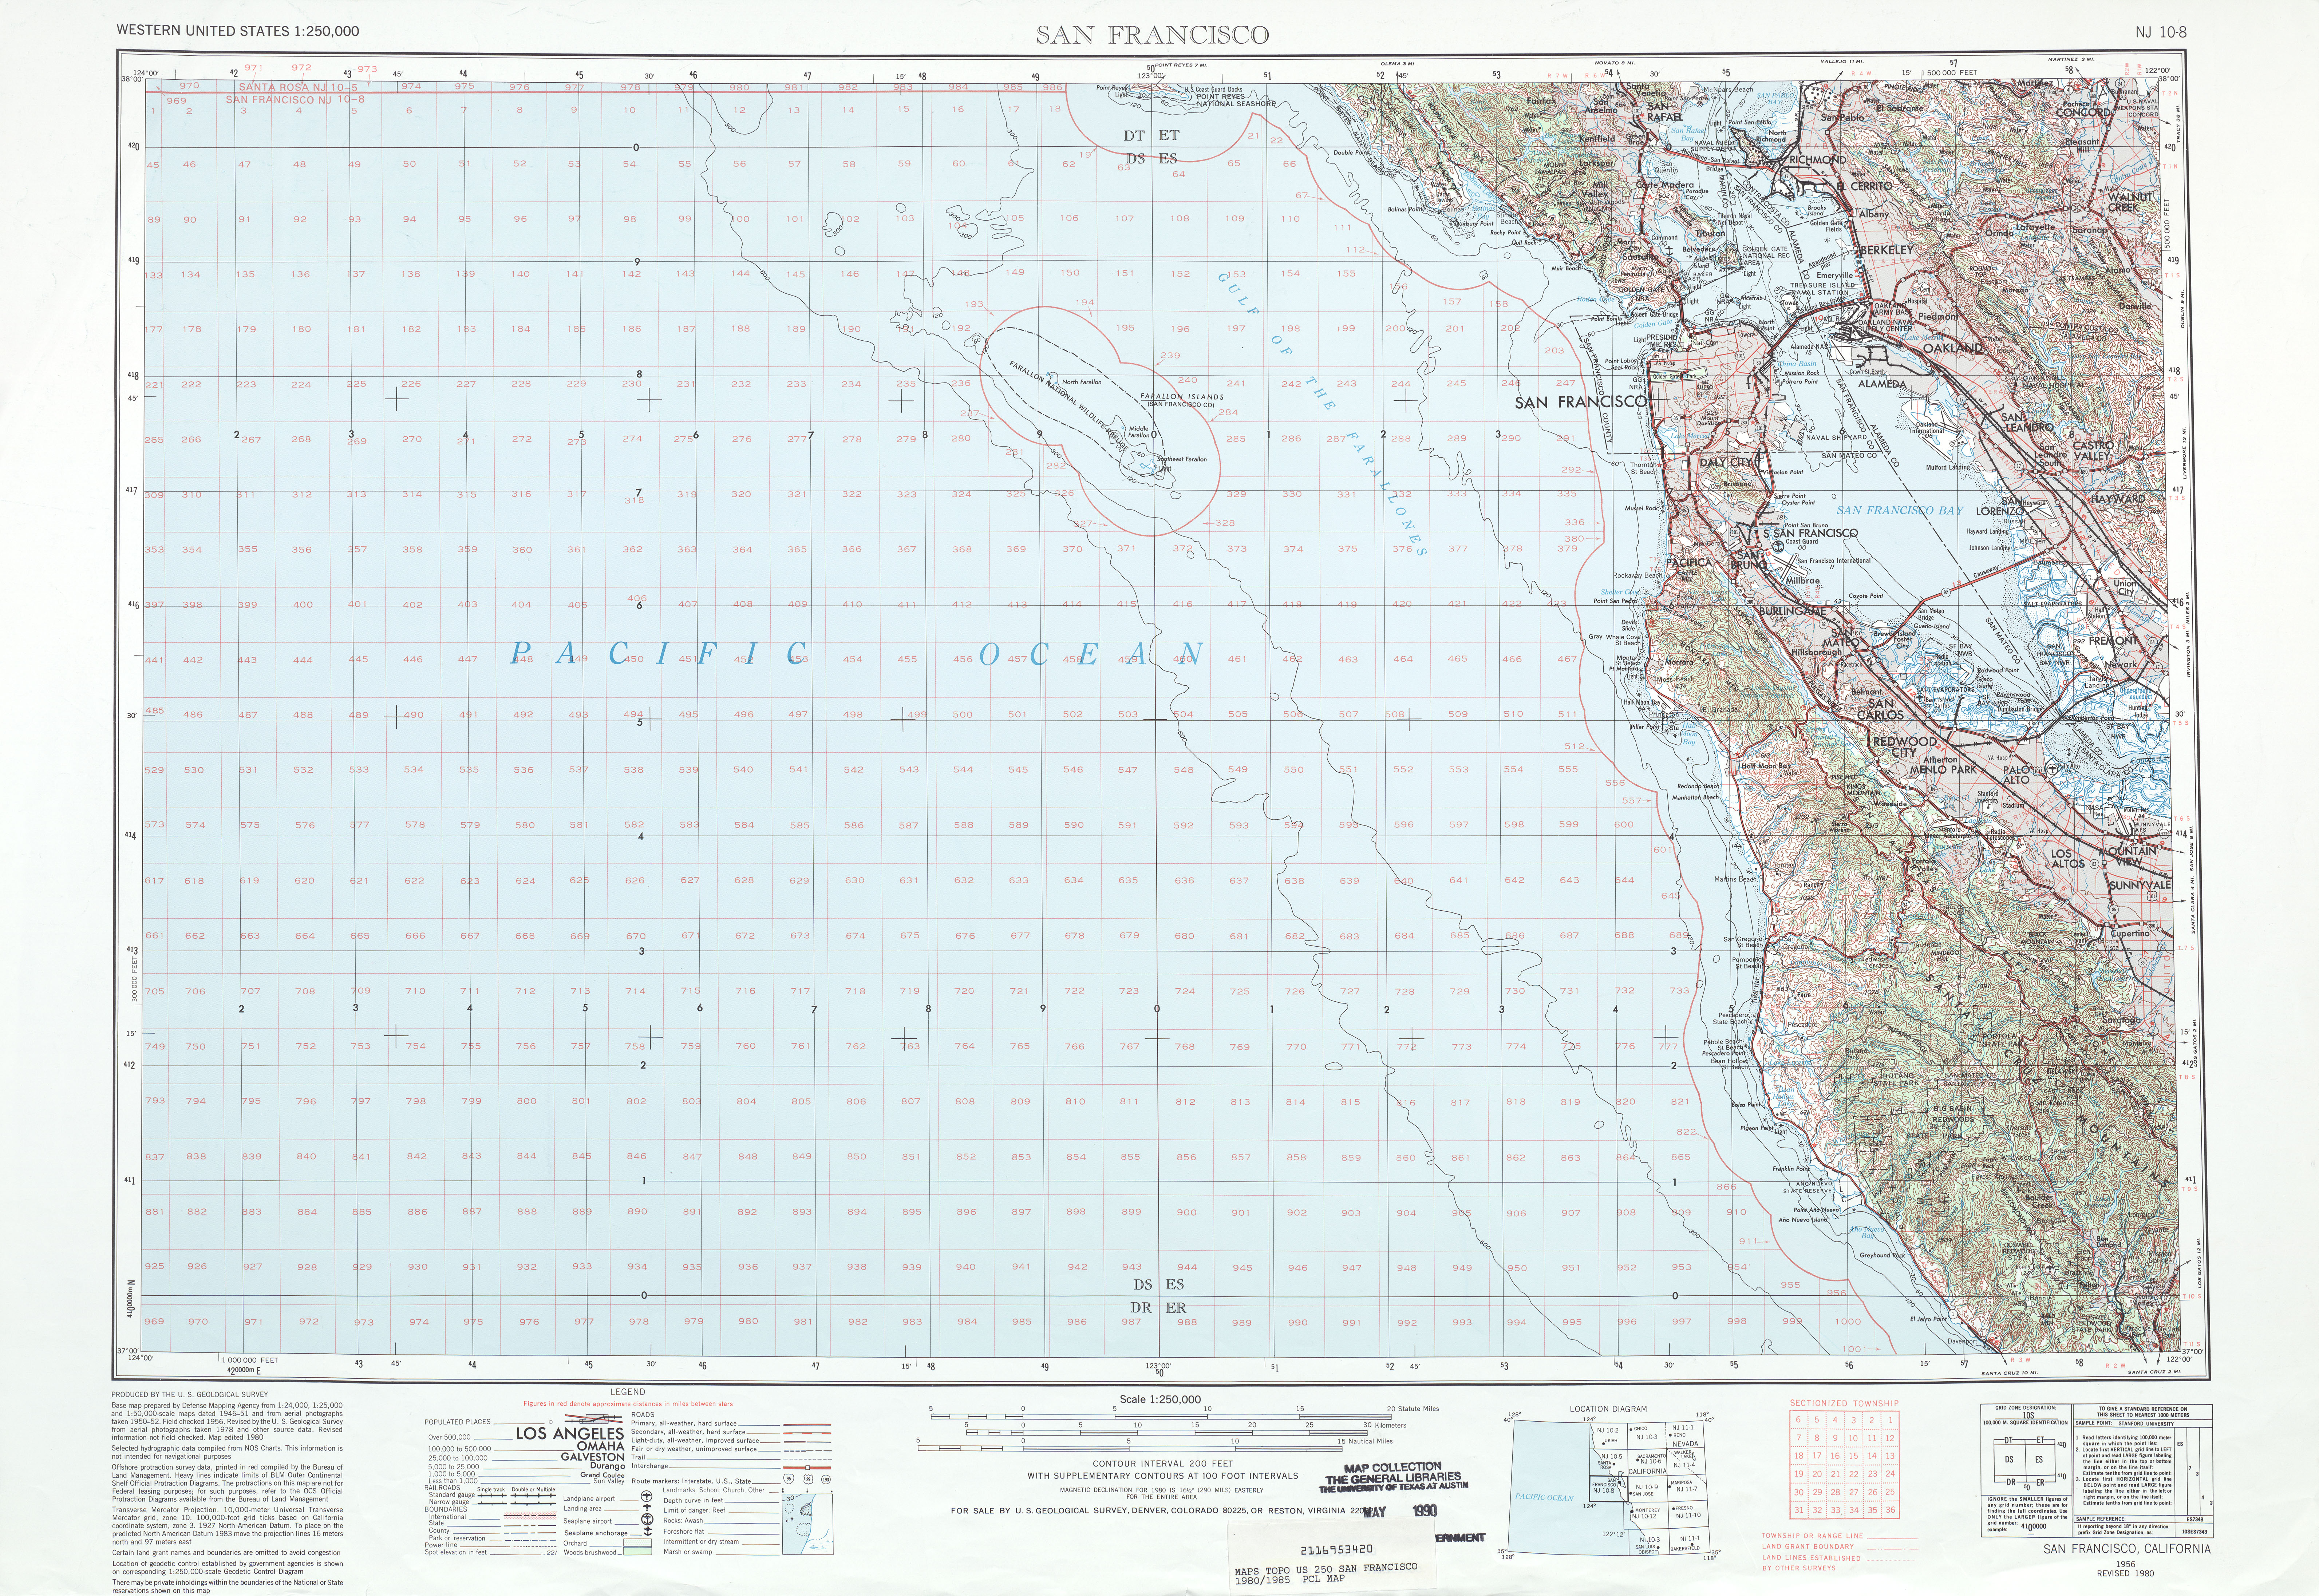 San Francisco Topographic Map Sheet, United States 1980